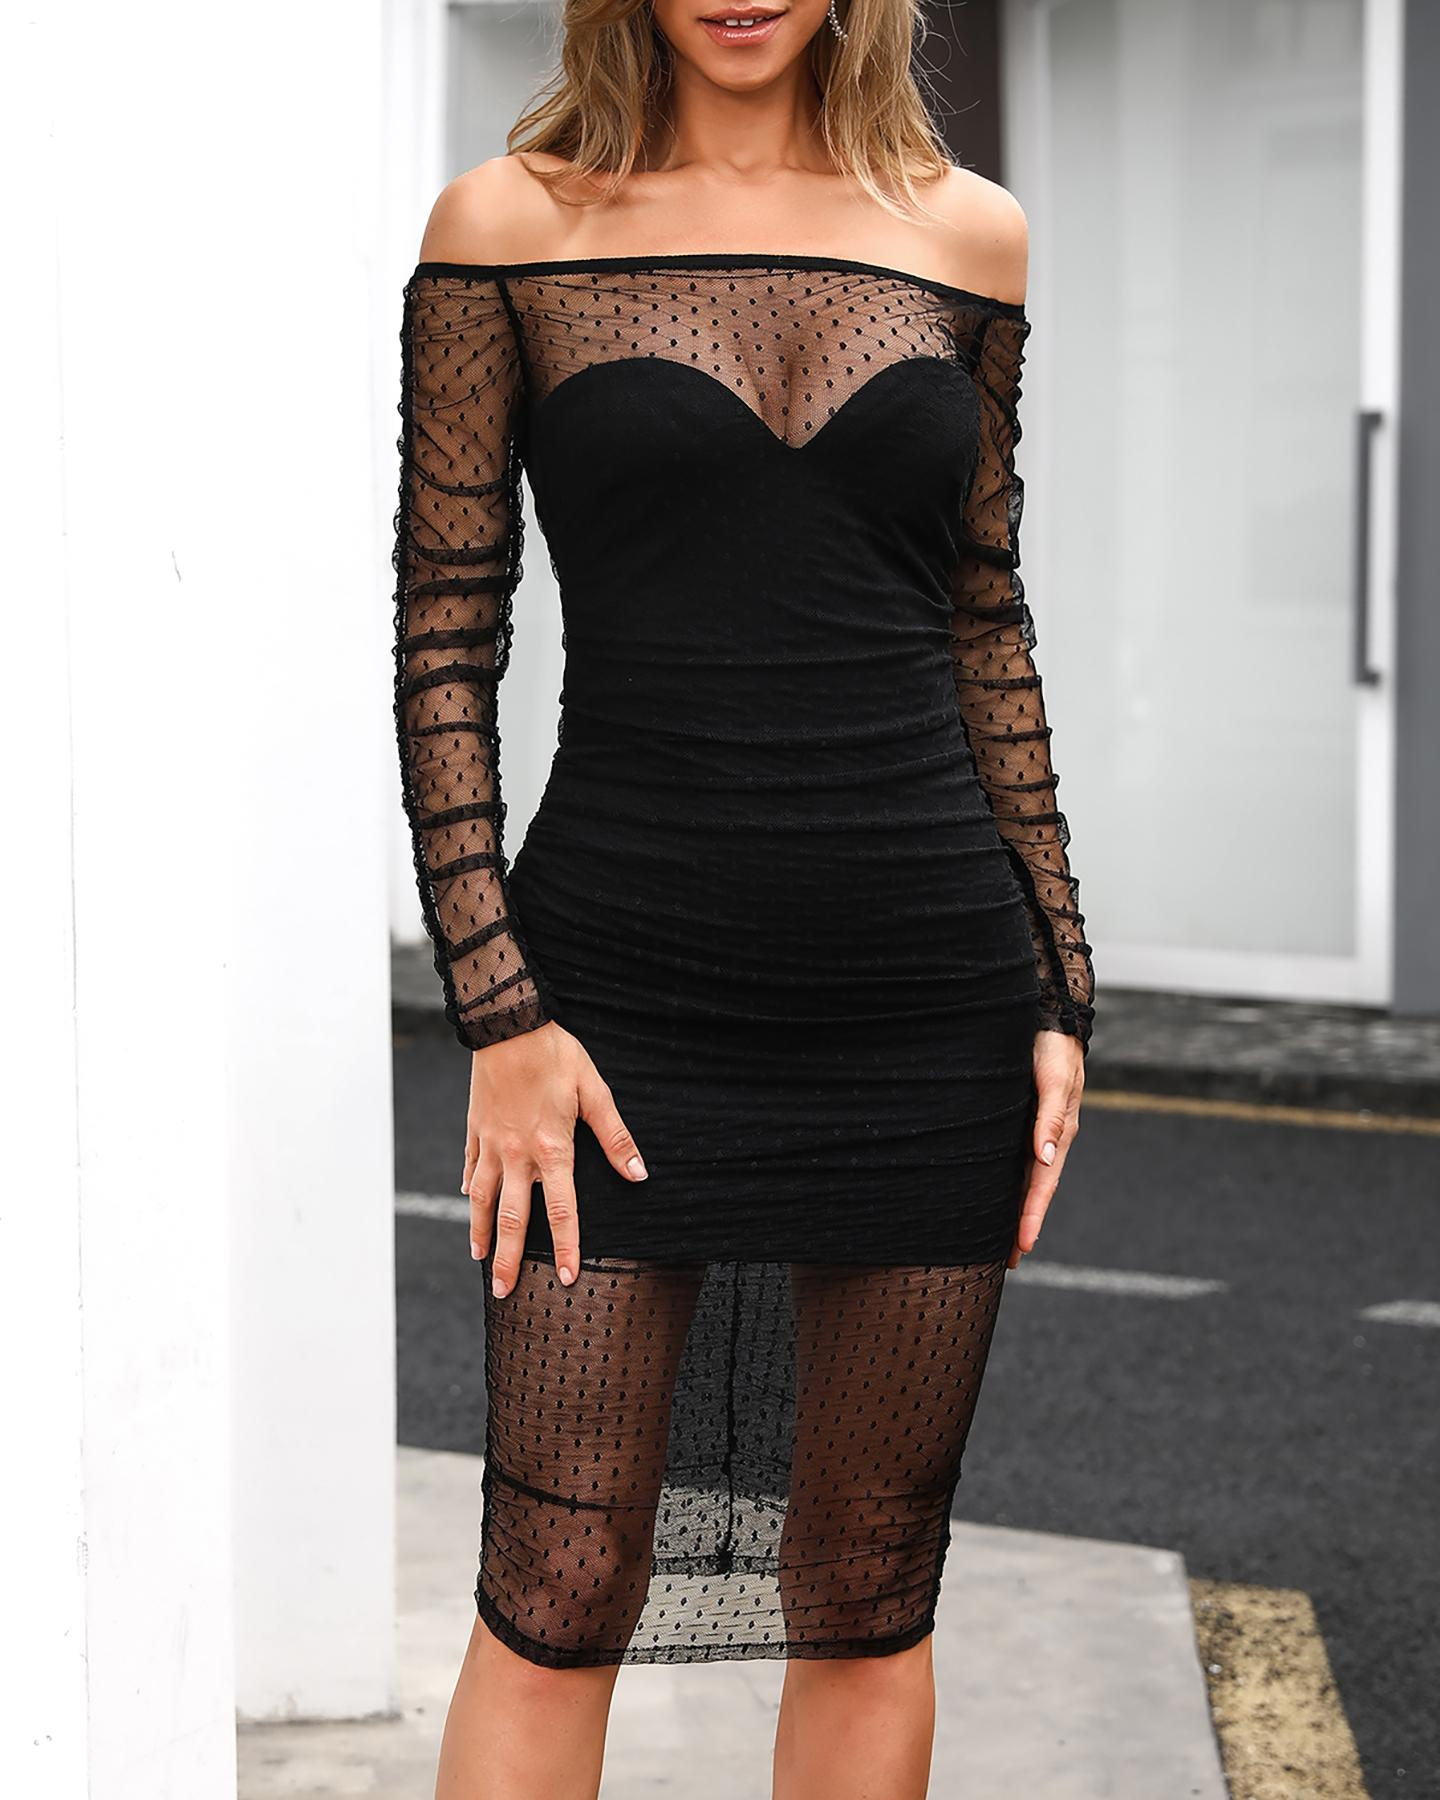 ivrose / Off Shoulder Dot Mesh Ruched Bodycon Dress